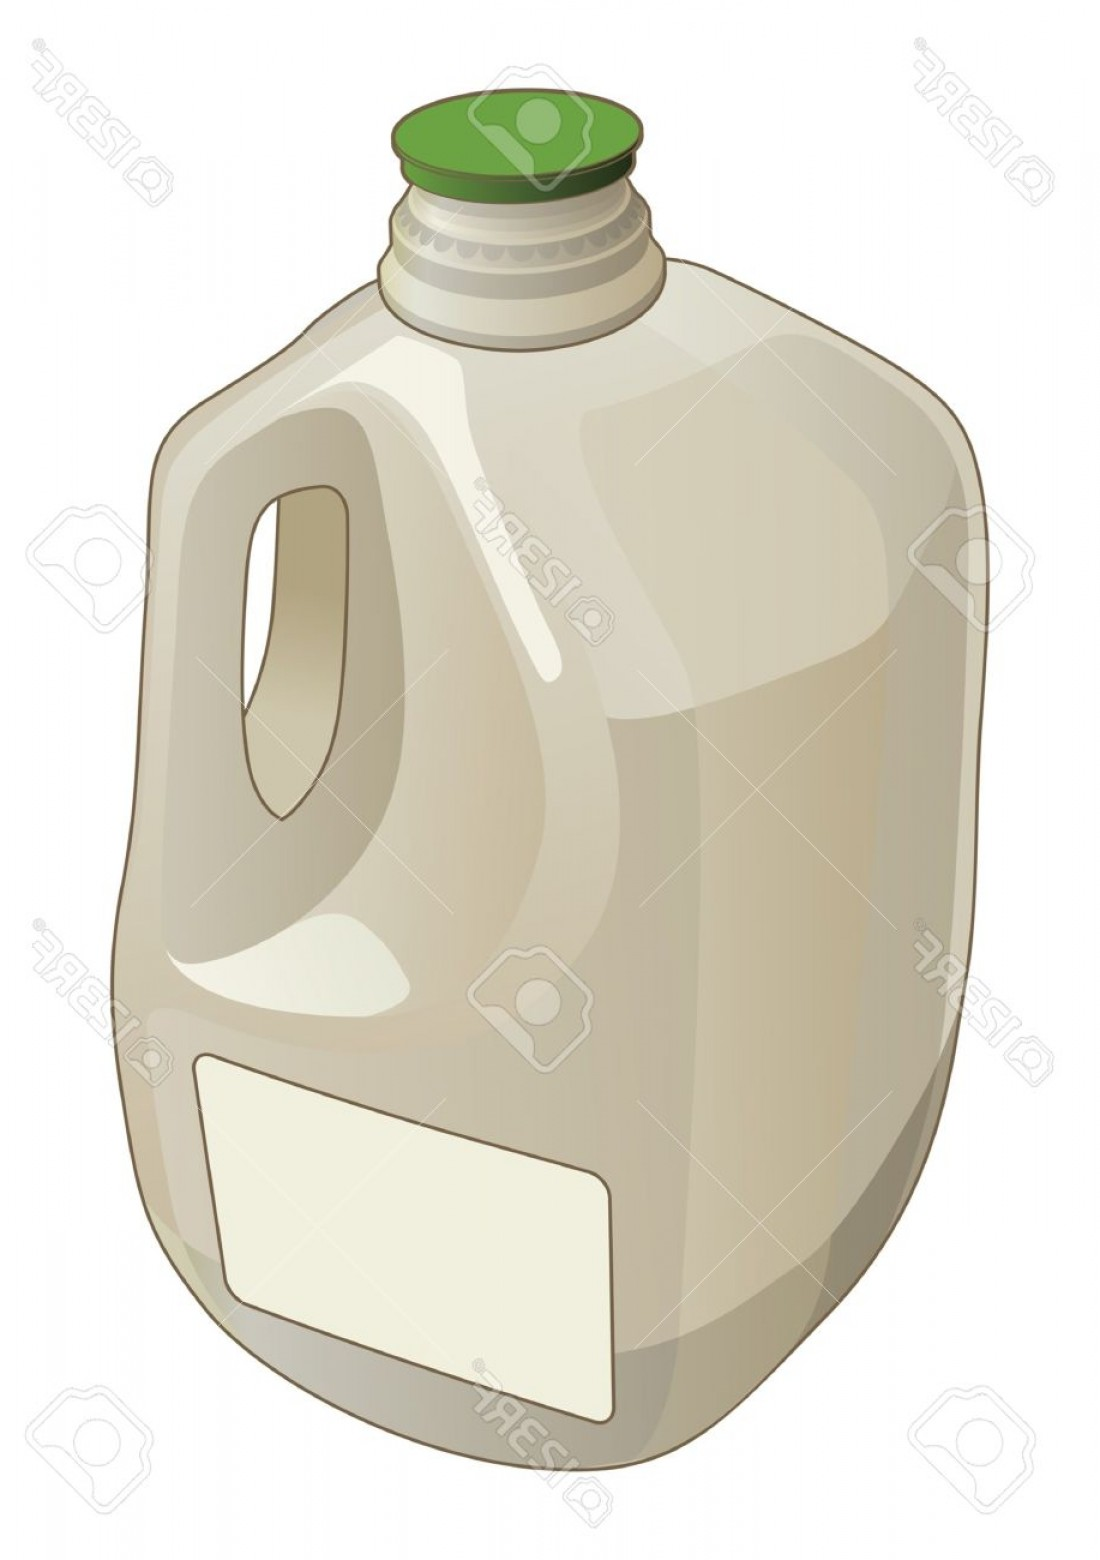 Gallon Milk Jug Vector: Photogallon Jug Is An Illustration Of A Gallon Jug Used As A Container For Milk And Other Liquids